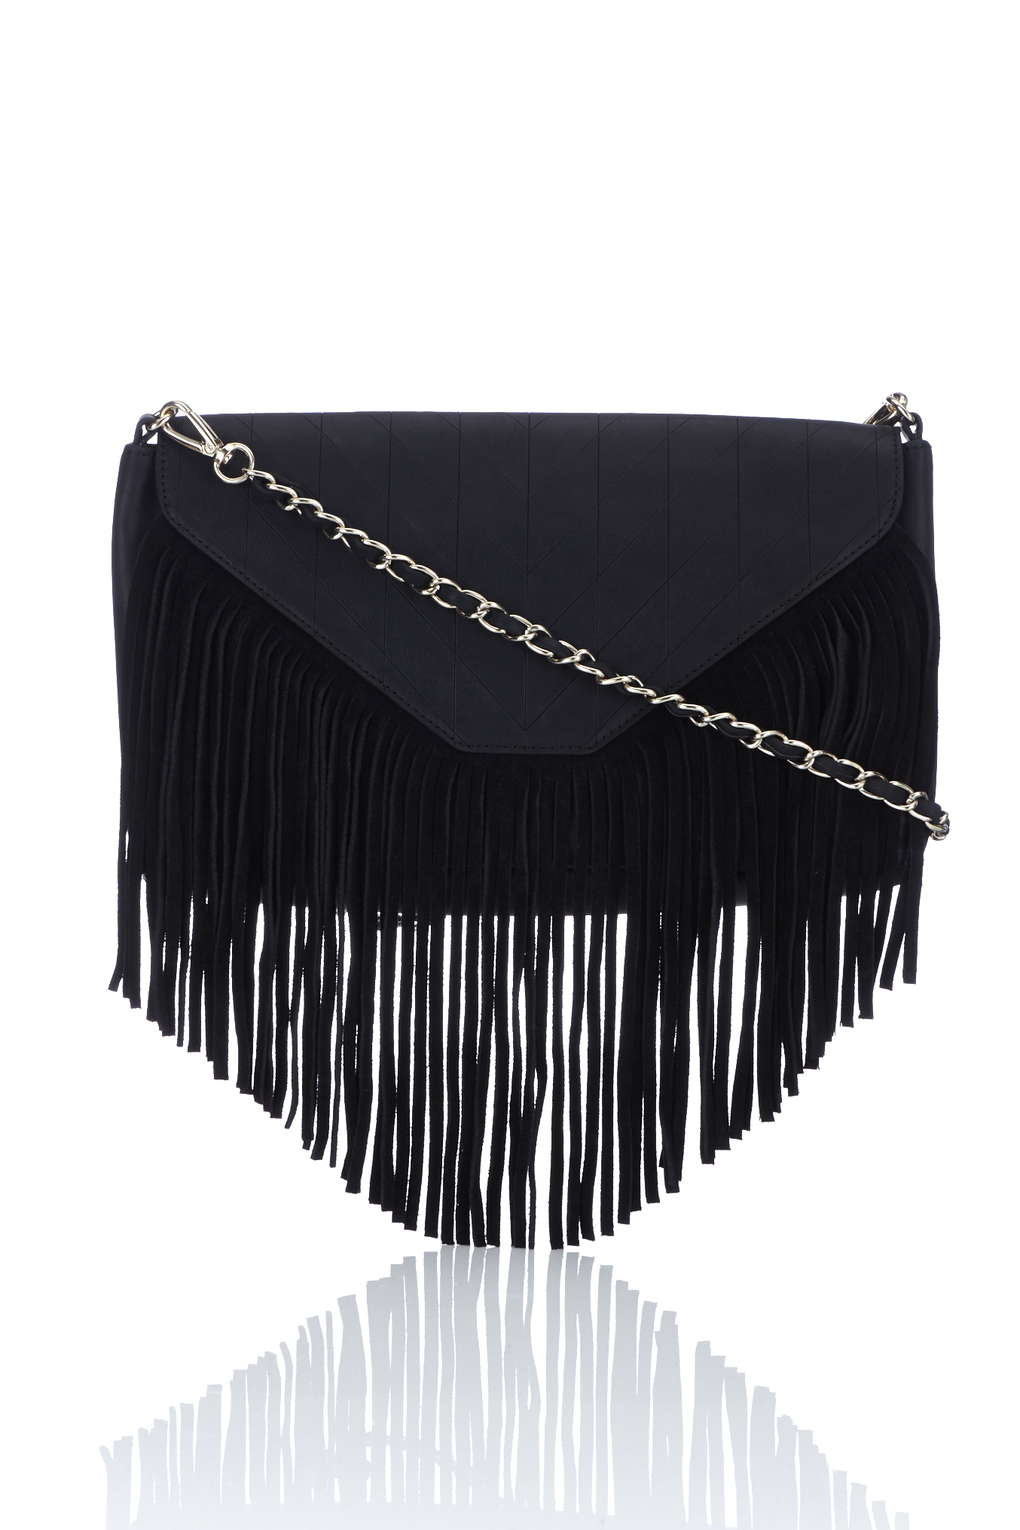 QUILT & FRINGE CROSS BODY